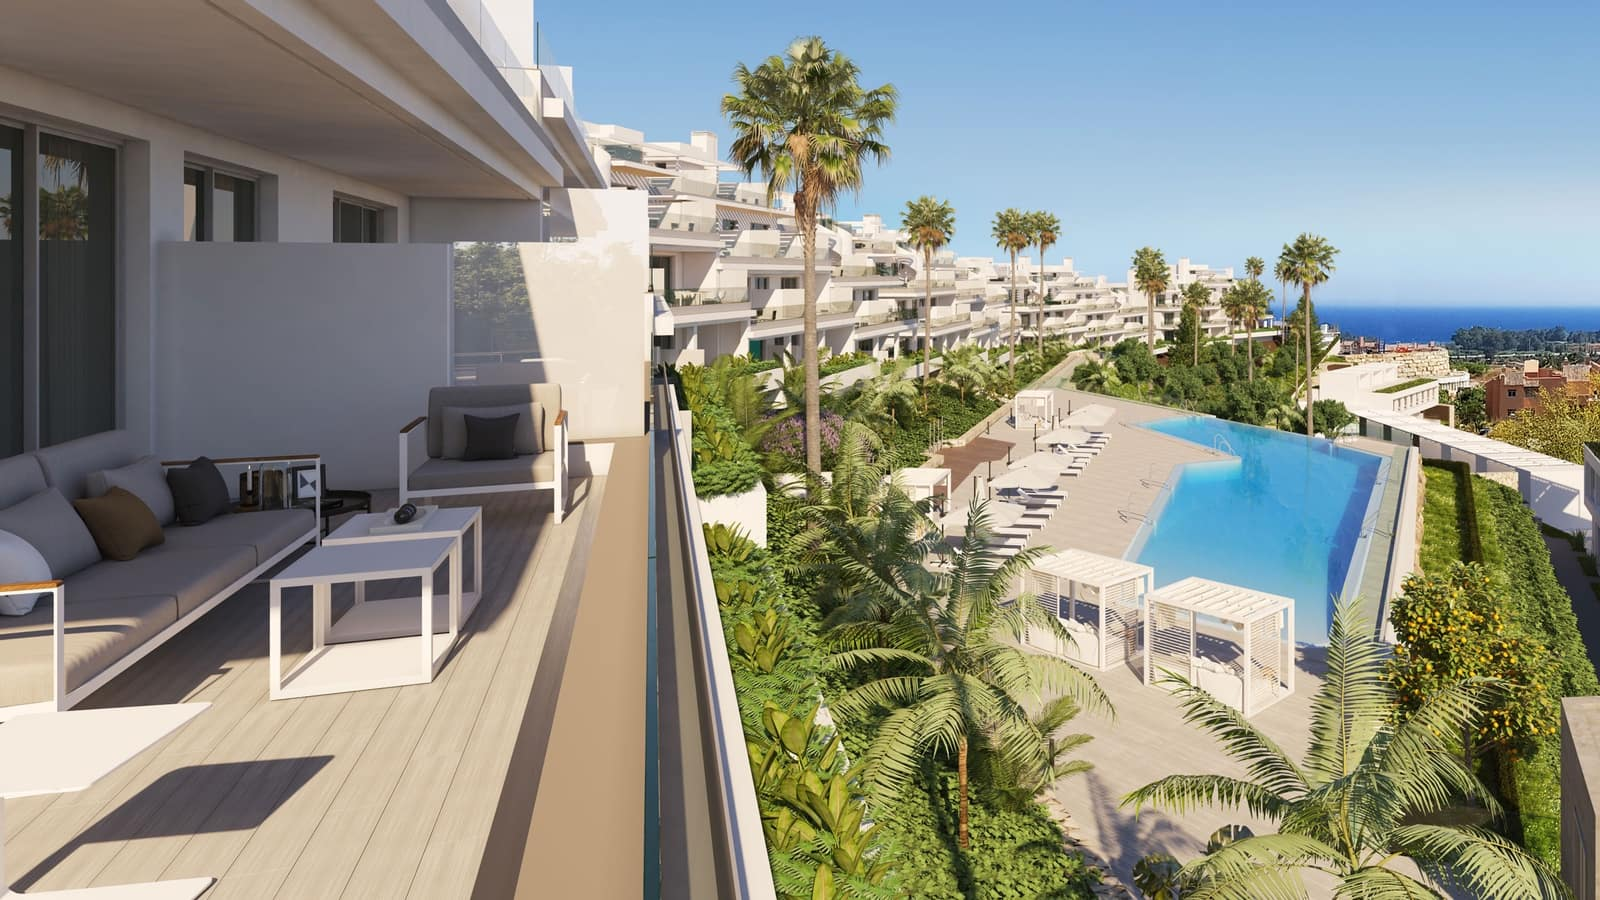 2 bedroom Penthouse for sale in Marbella with pool garage - € 380,000 (Ref: 4706132)